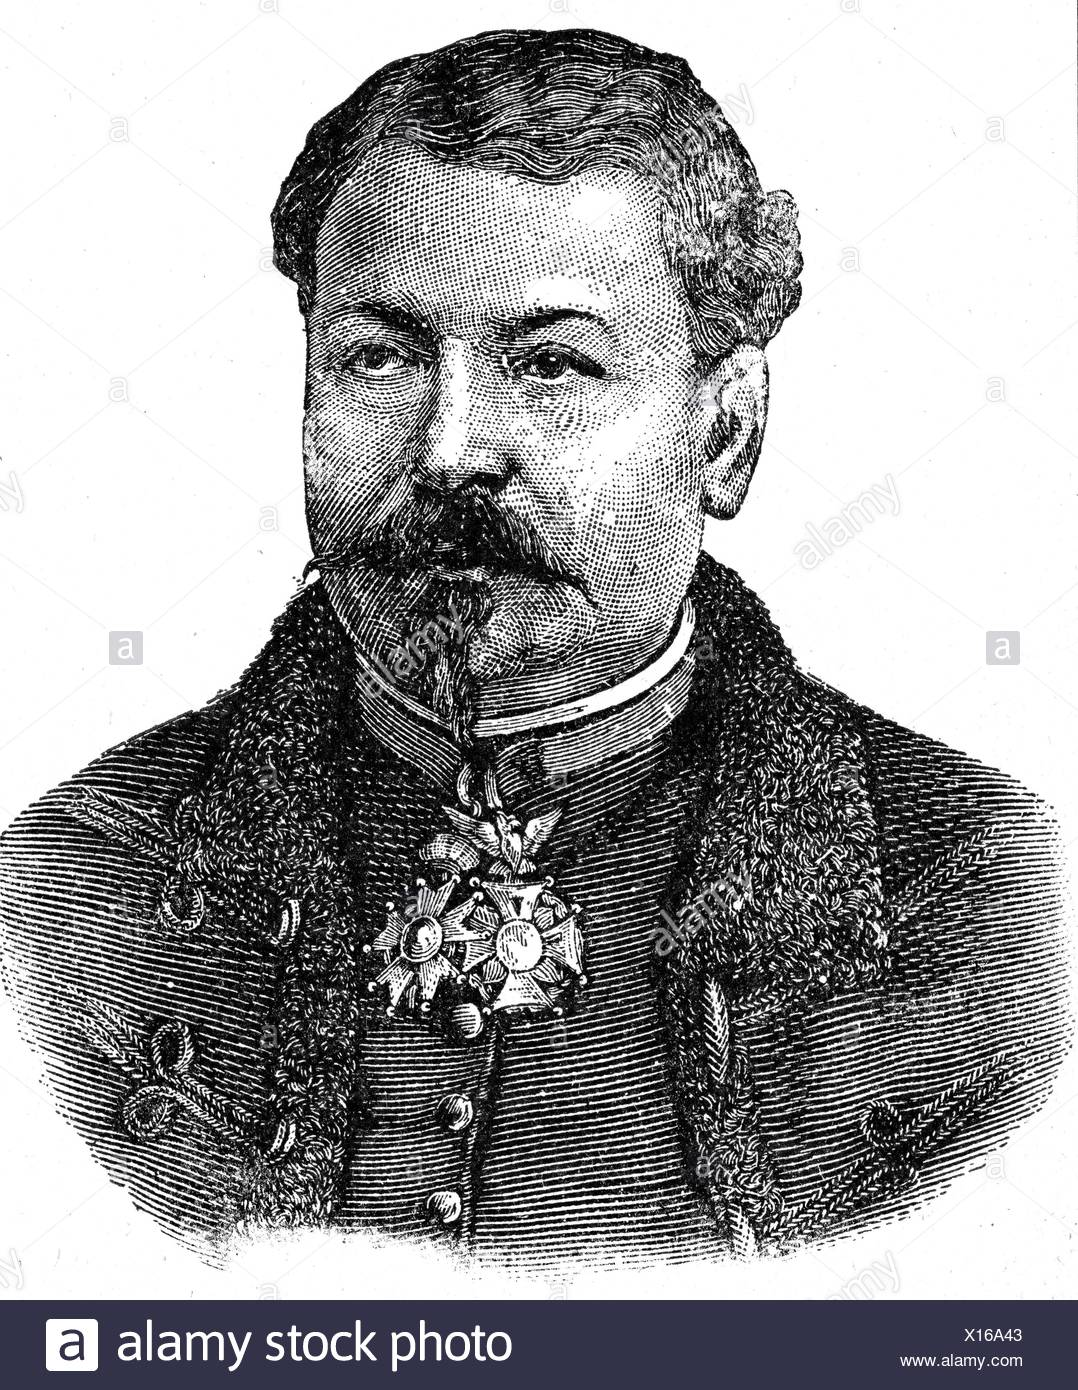 Margueritte, Jean-Auguste, 15.1.1823 - 6.9.1870, French general, portrait, wood engraving, 1871, Additional-Rights-Clearances-NA - Stock Image